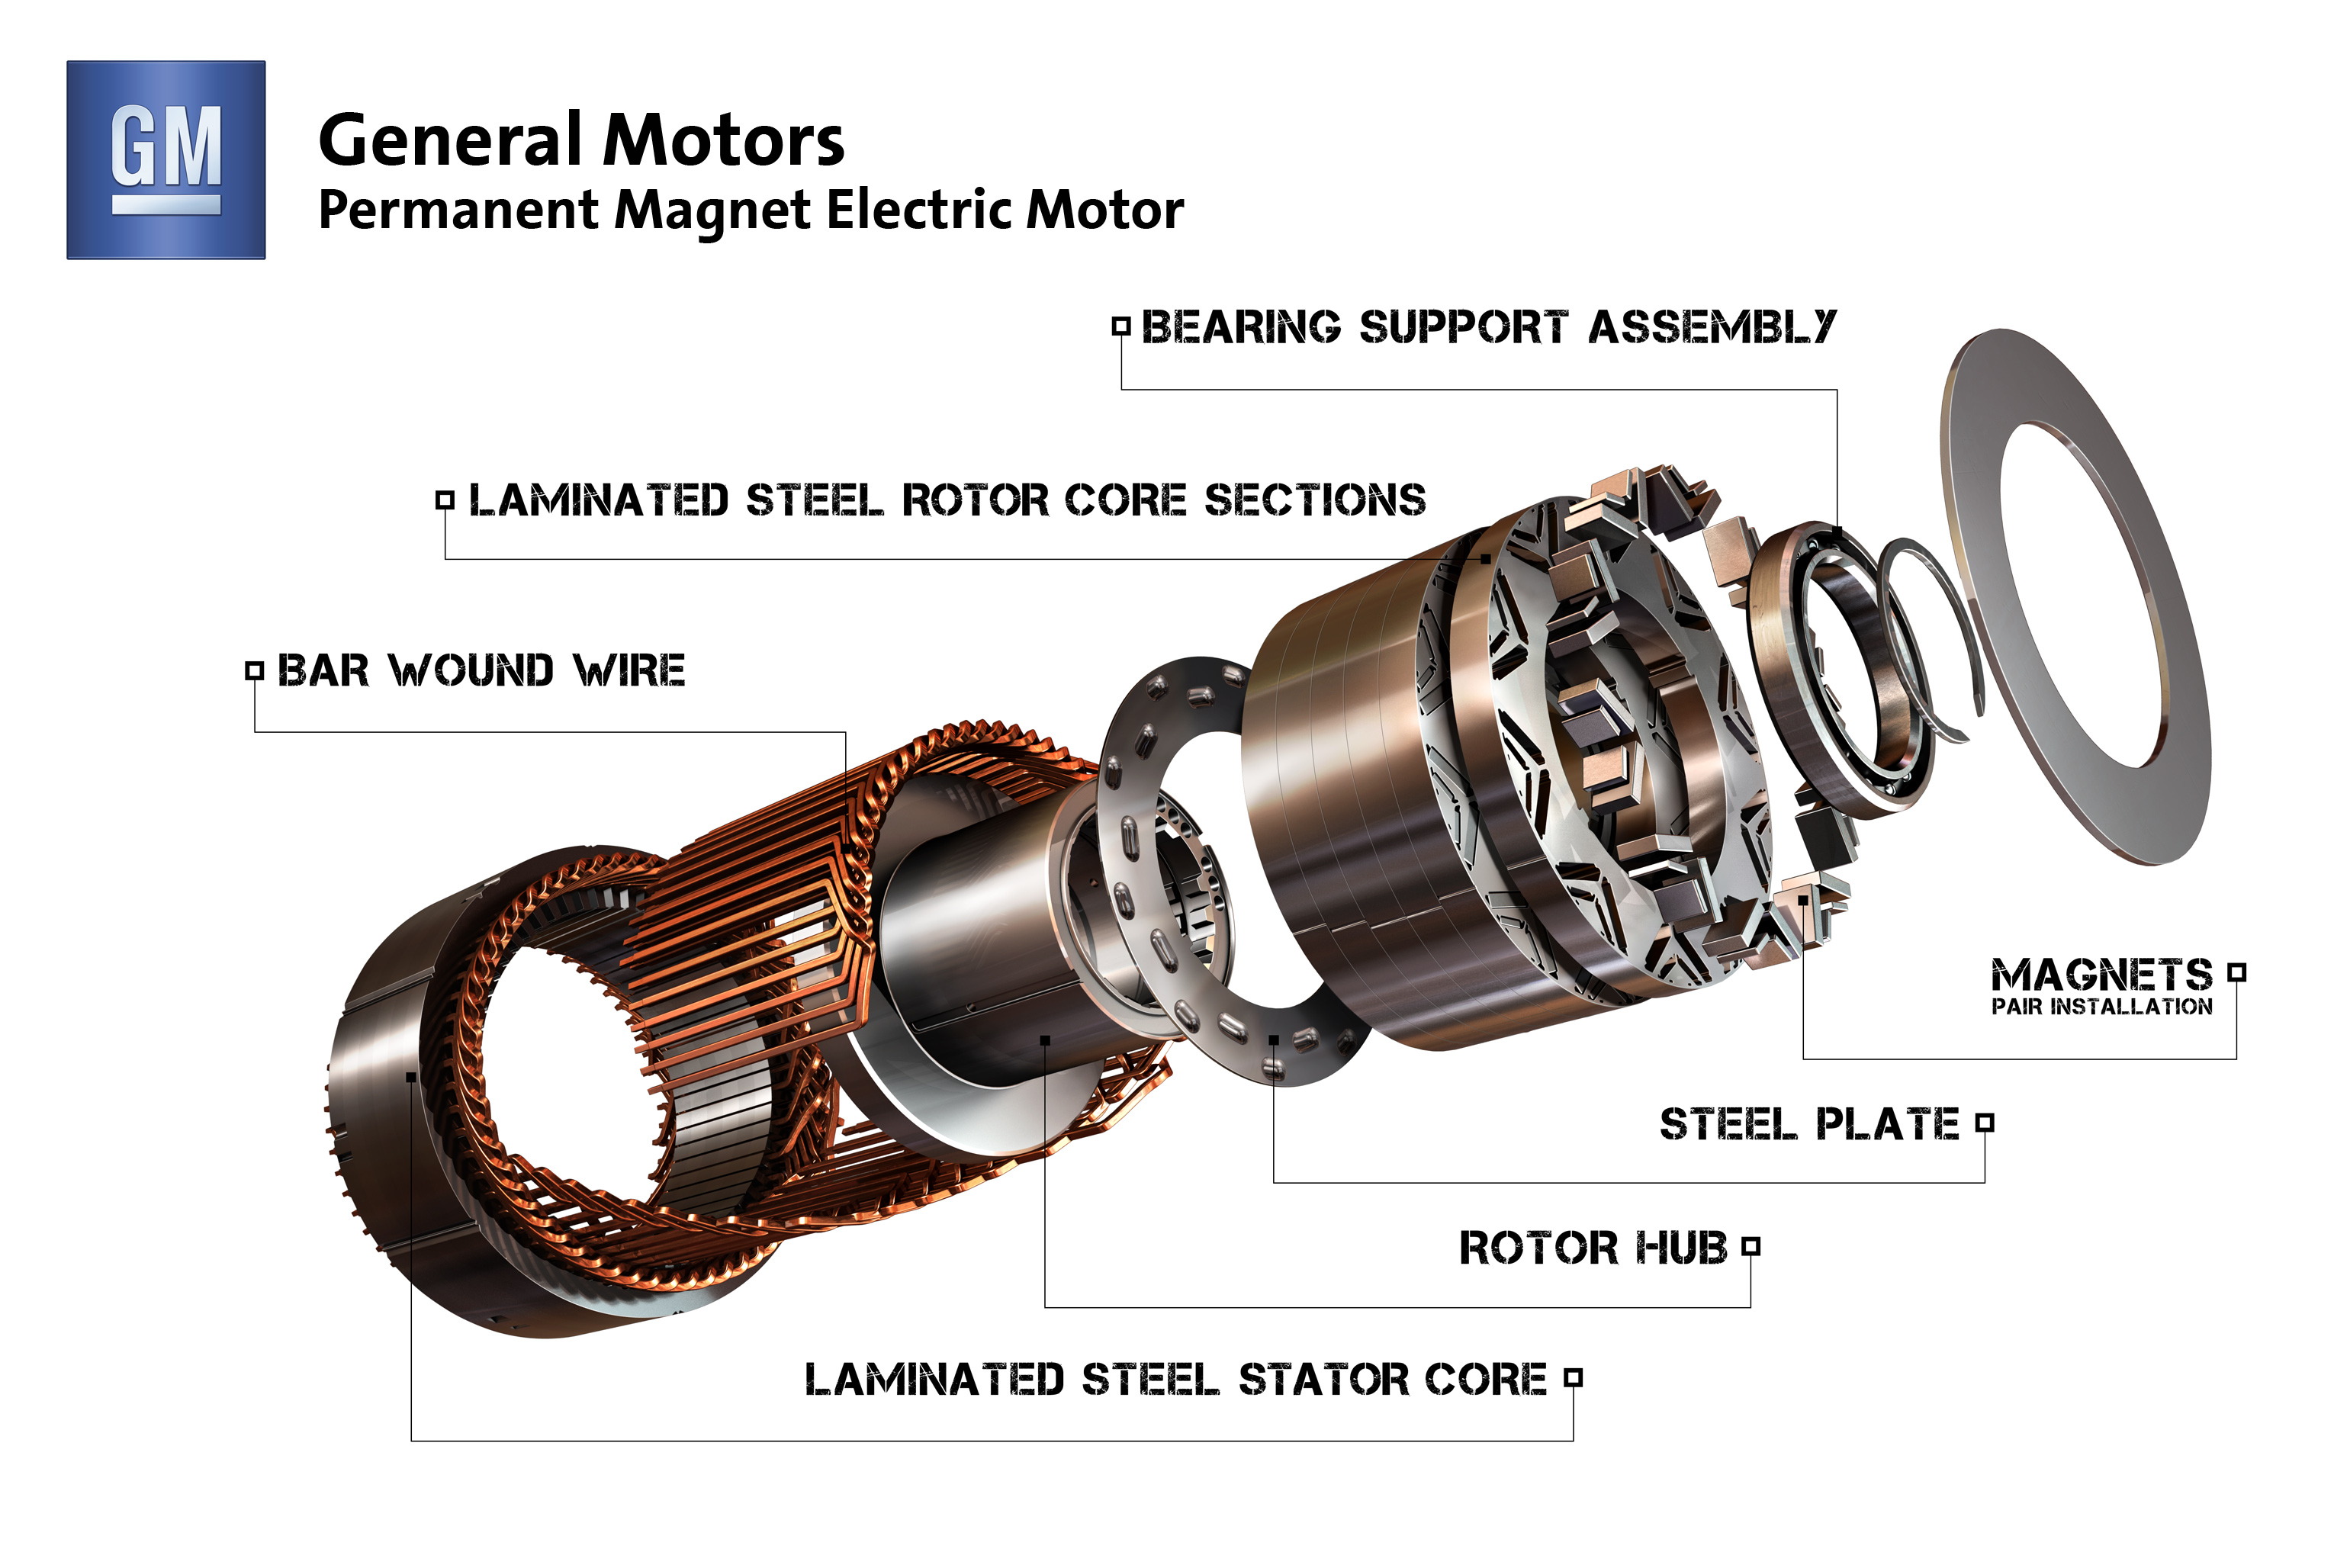 General Motors Permanent Magnetic Electric Motor The Image Above